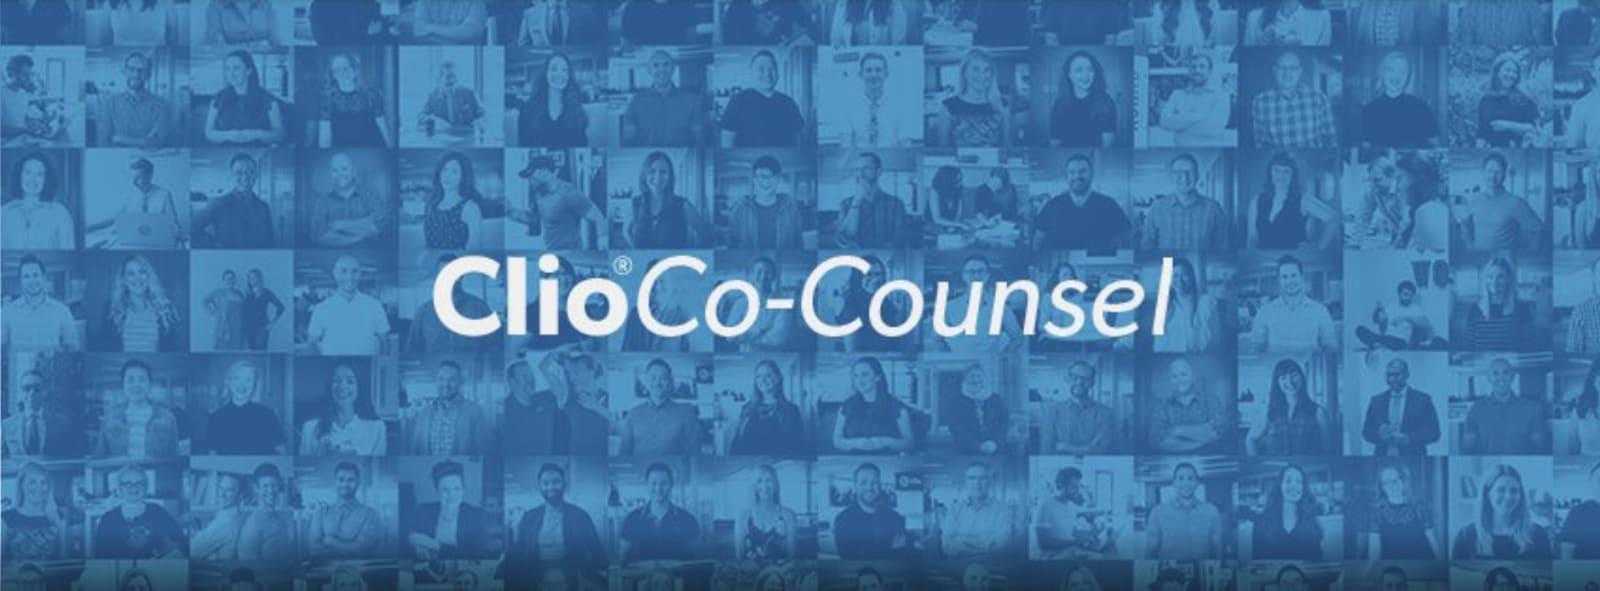 clio cocounsel facebook group